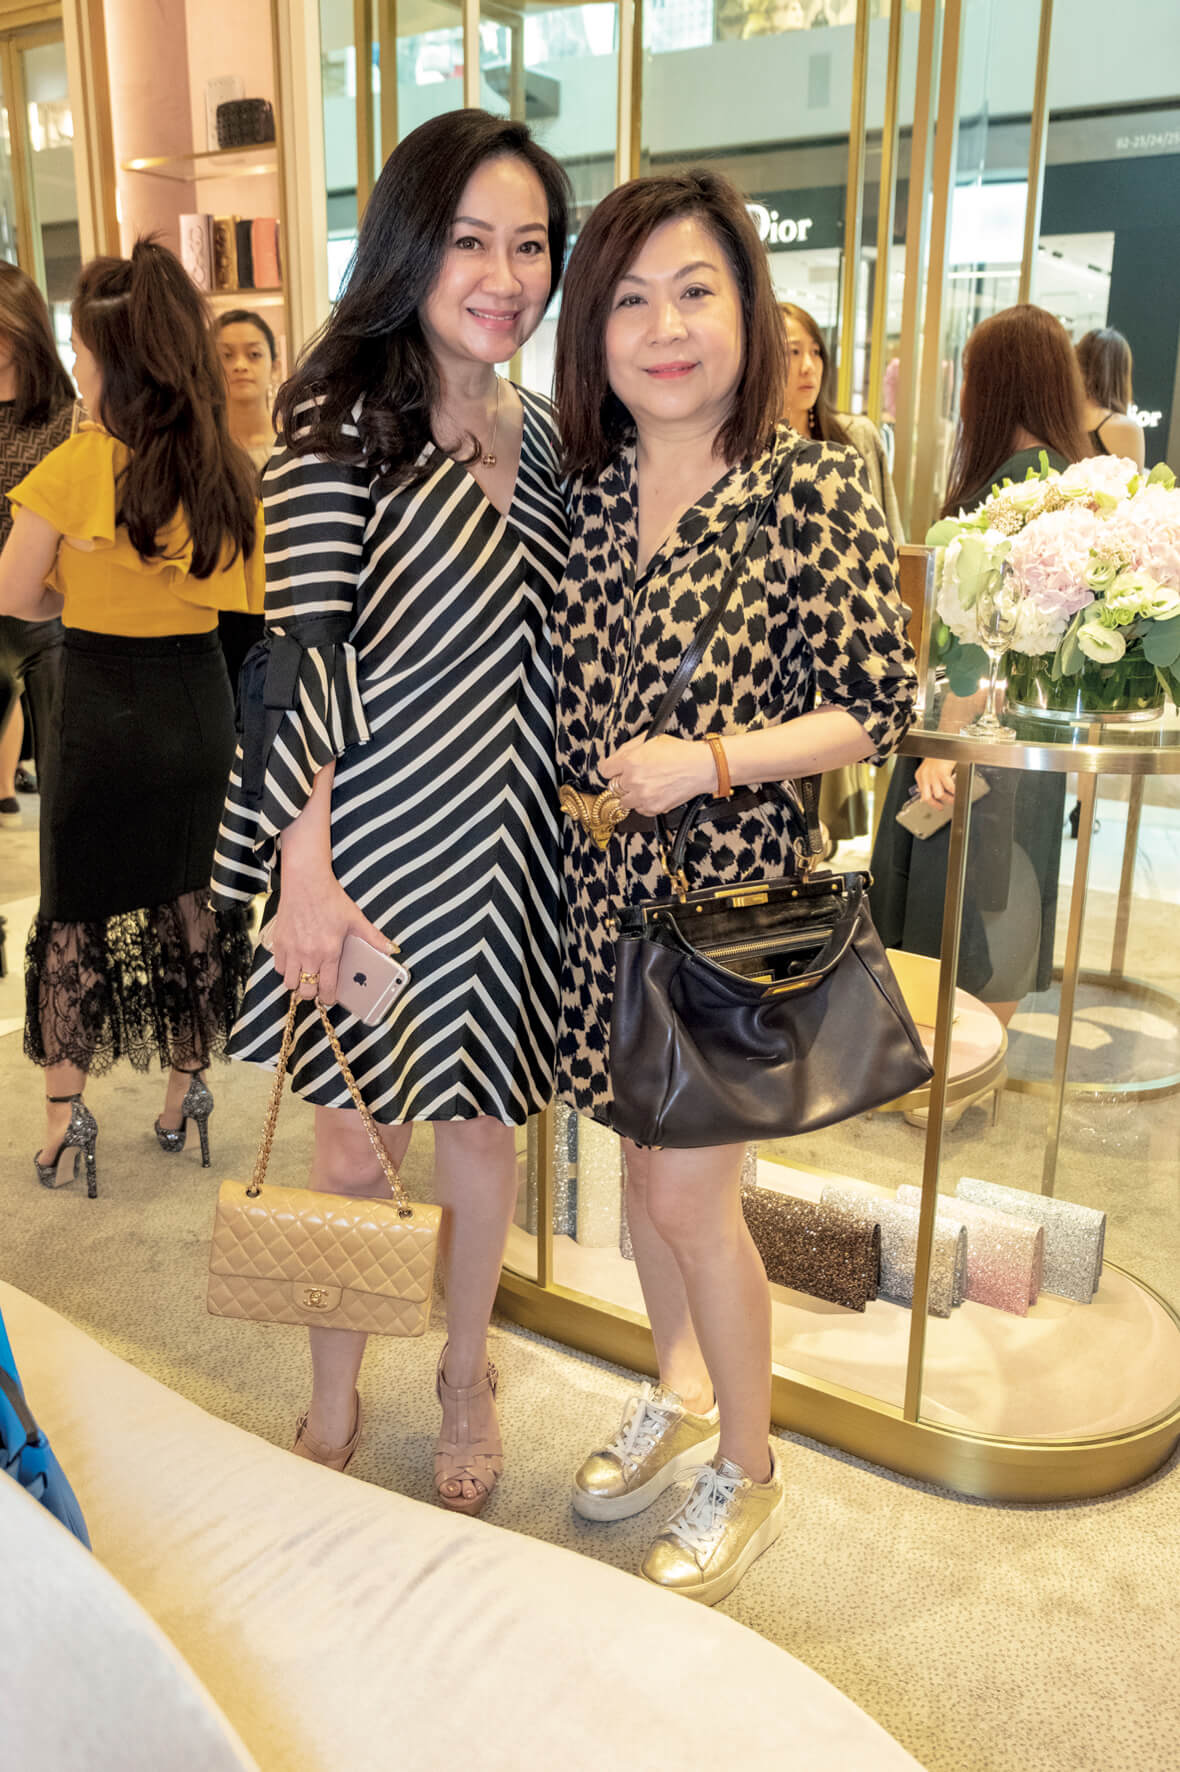 Celine Lo and Lilian Low